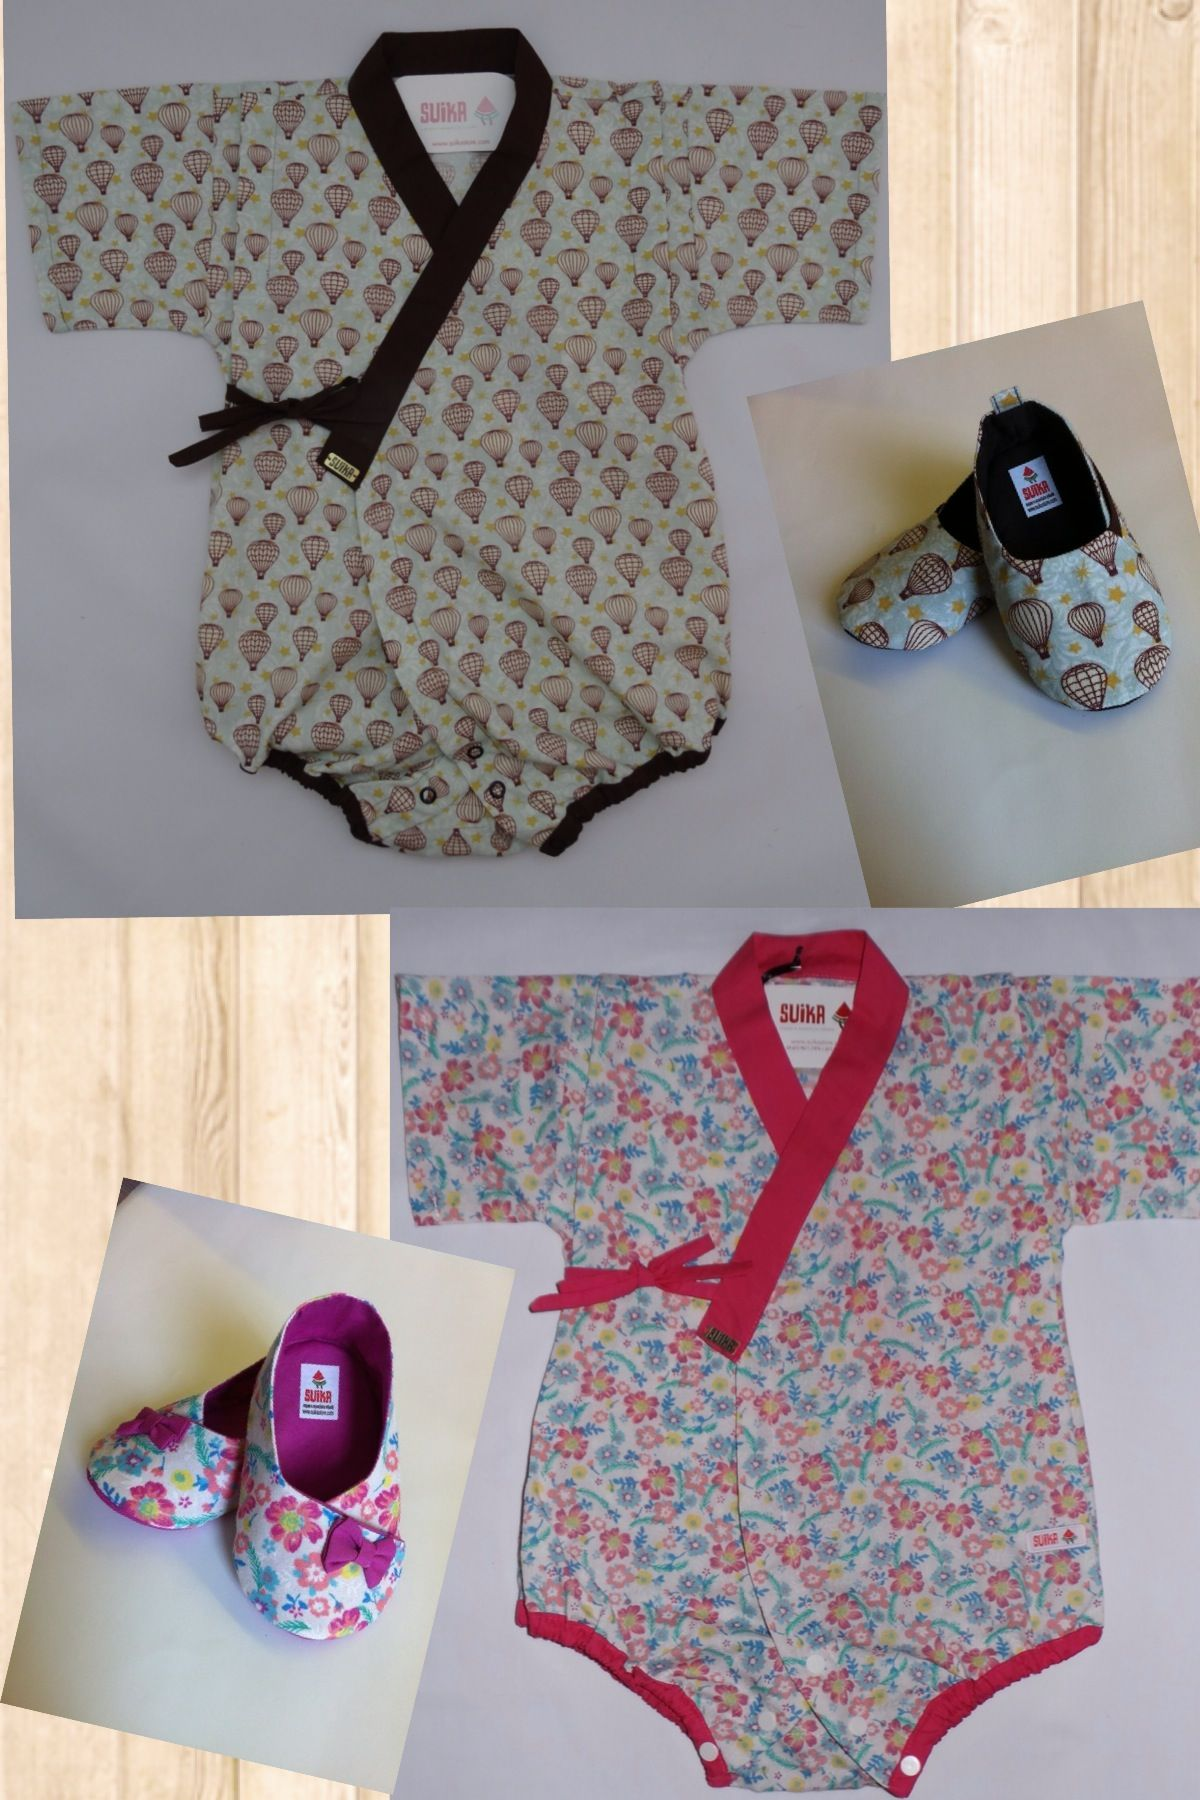 Baby Kimono Baby Clothes Baby Shoes Bodysuit By Suika 0 18 Months